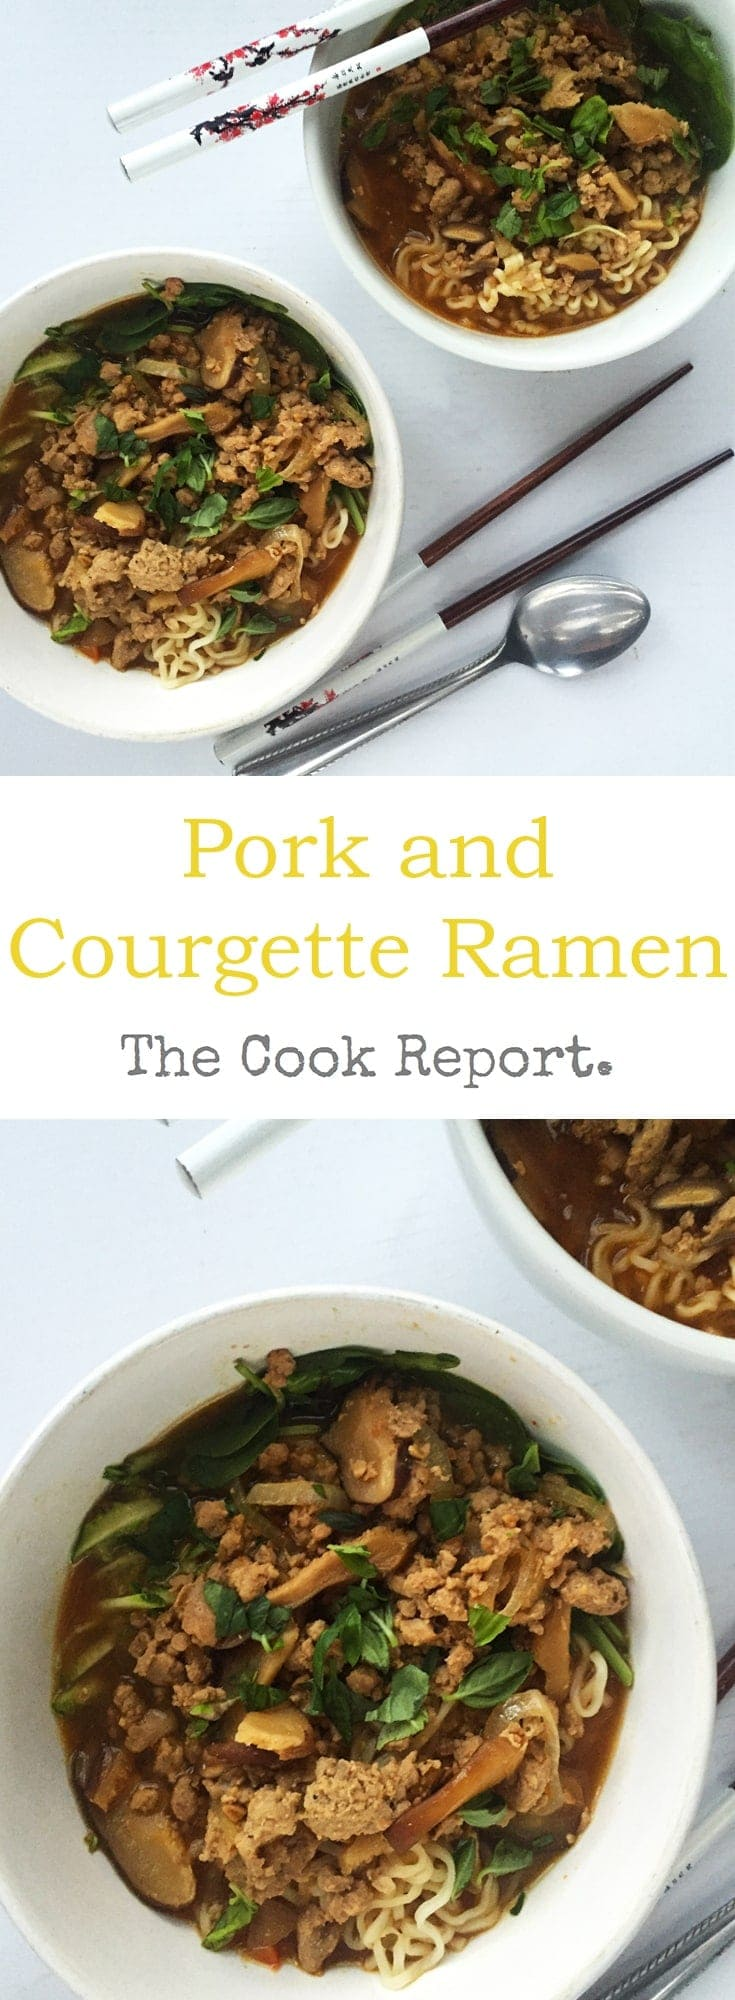 Make this pork and courgette ramen for a quick weeknight dinner. Now you can have ramen on the table in less than half an hour!